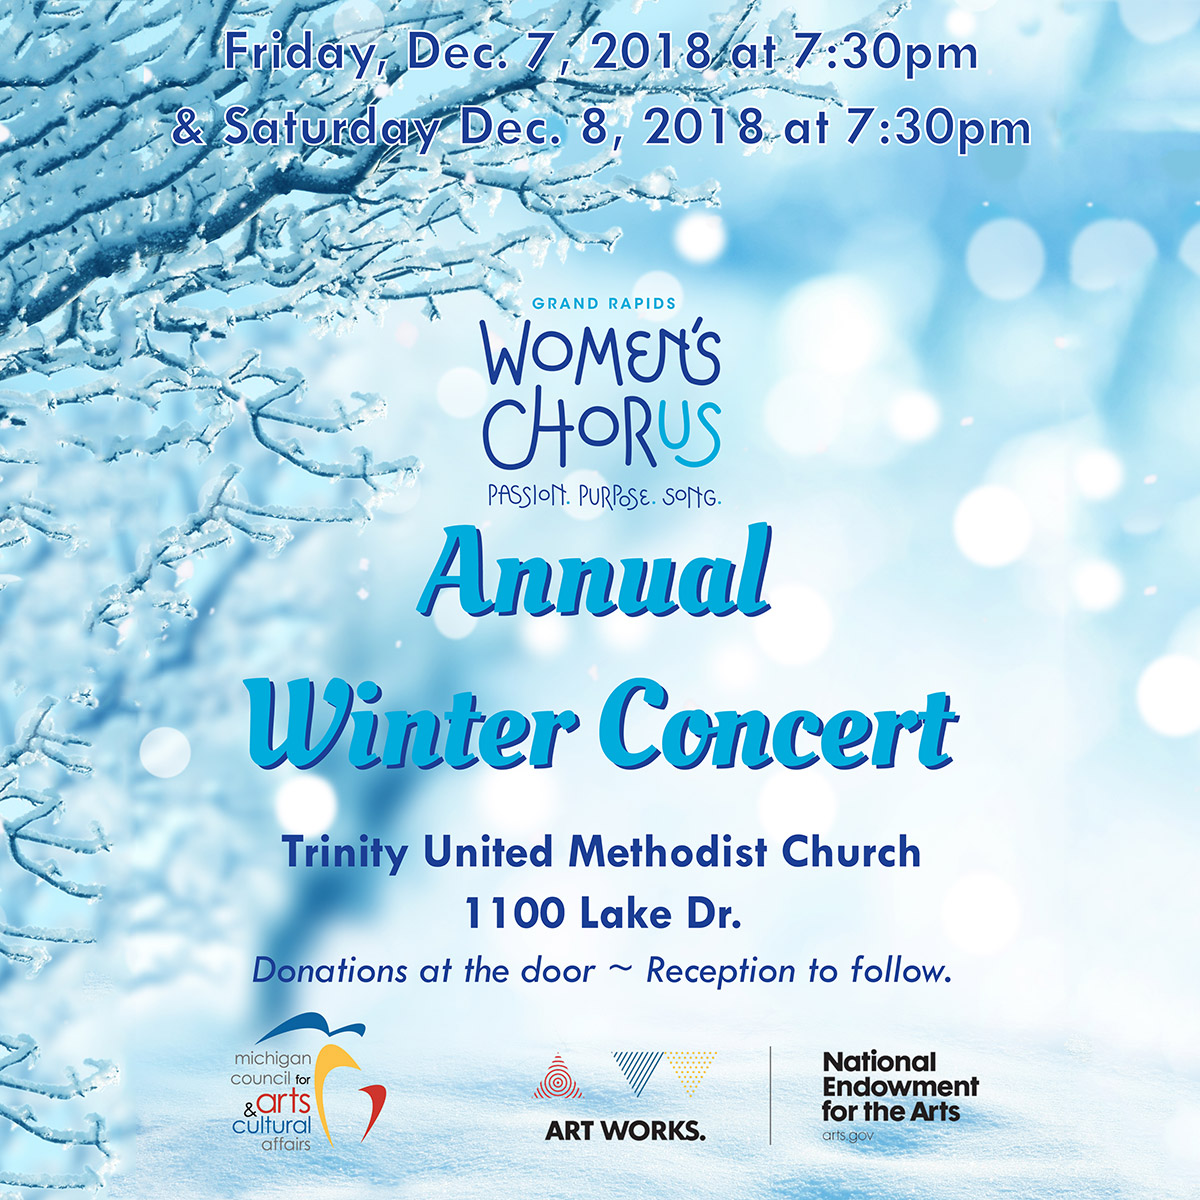 Annual Winter Concert - Sponsored by the Michigan Council for Arts and Cultural Affairs and the National Endowment for the Arts. Location, and details in page copy.